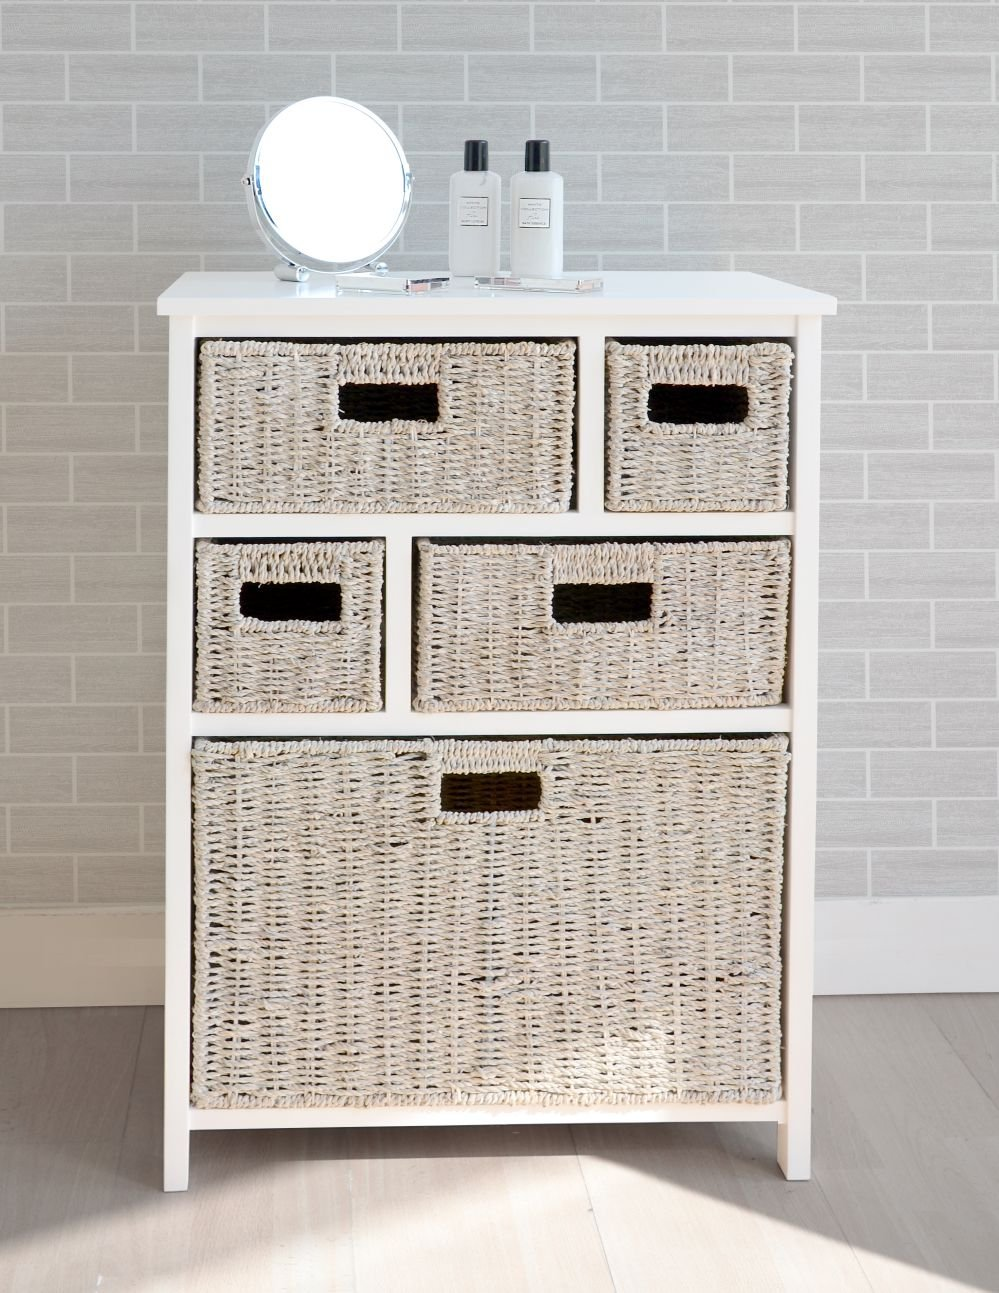 Tetbury White Storage Unit with 5 Whitewash Basket Drawers, FULLY ASSEMBLED hallway, bathroom storage unit       review and more information